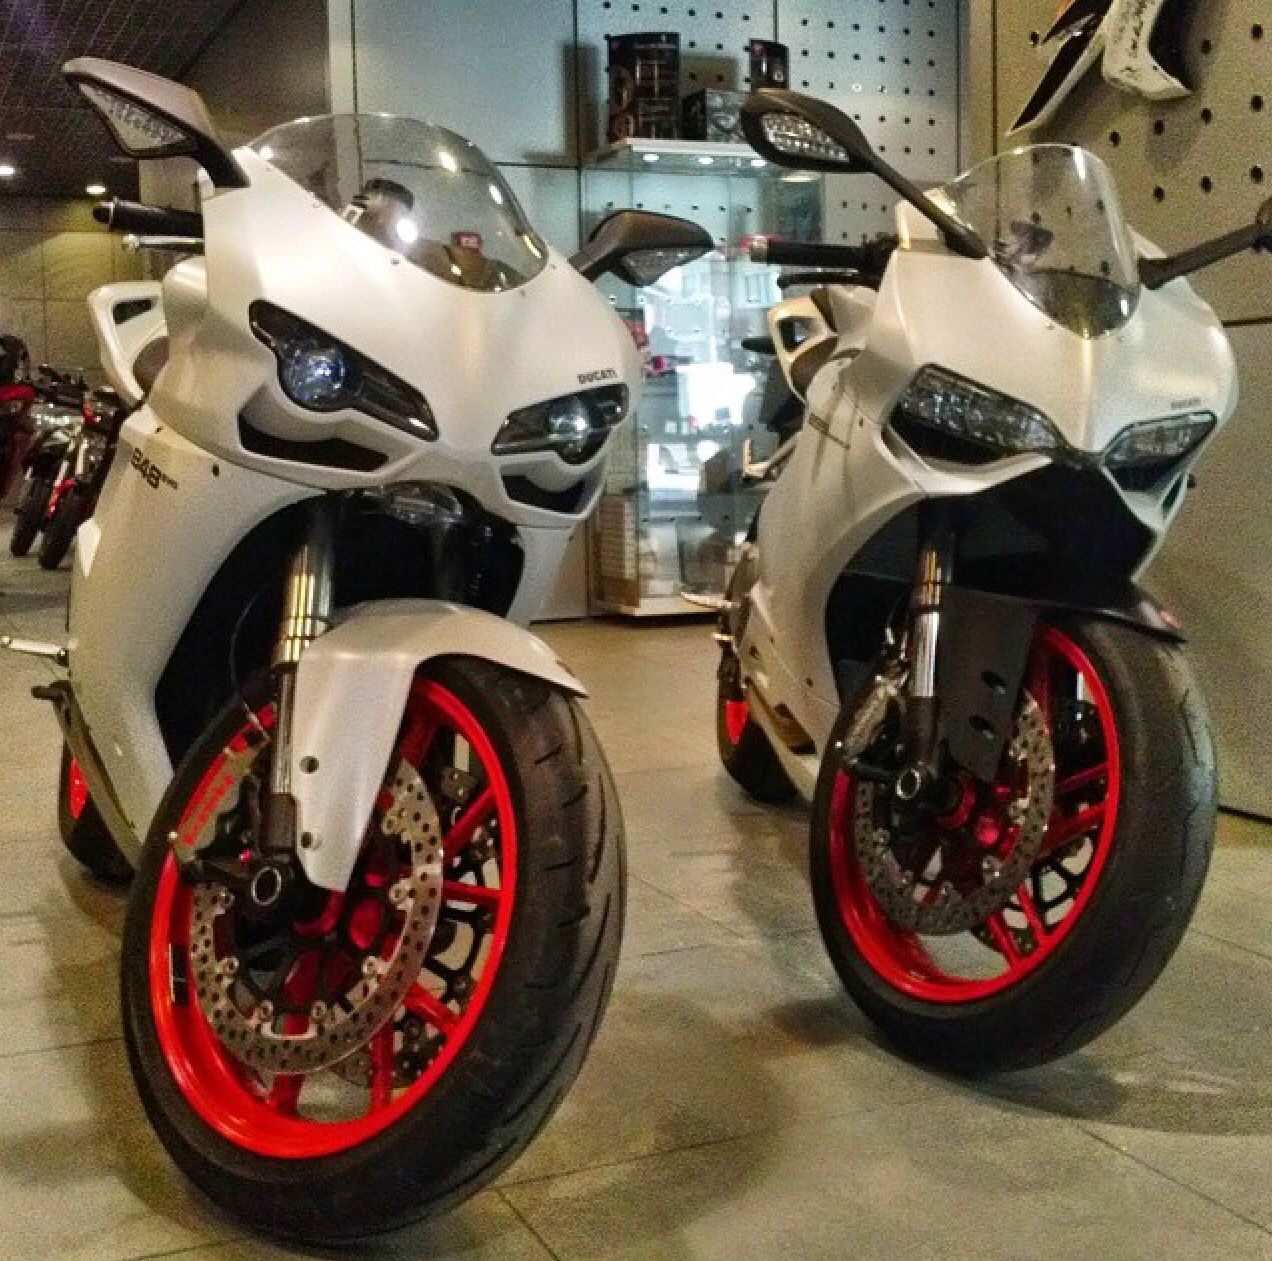 ducati 848 evo and ducati 899 panigale motorcycles. Black Bedroom Furniture Sets. Home Design Ideas